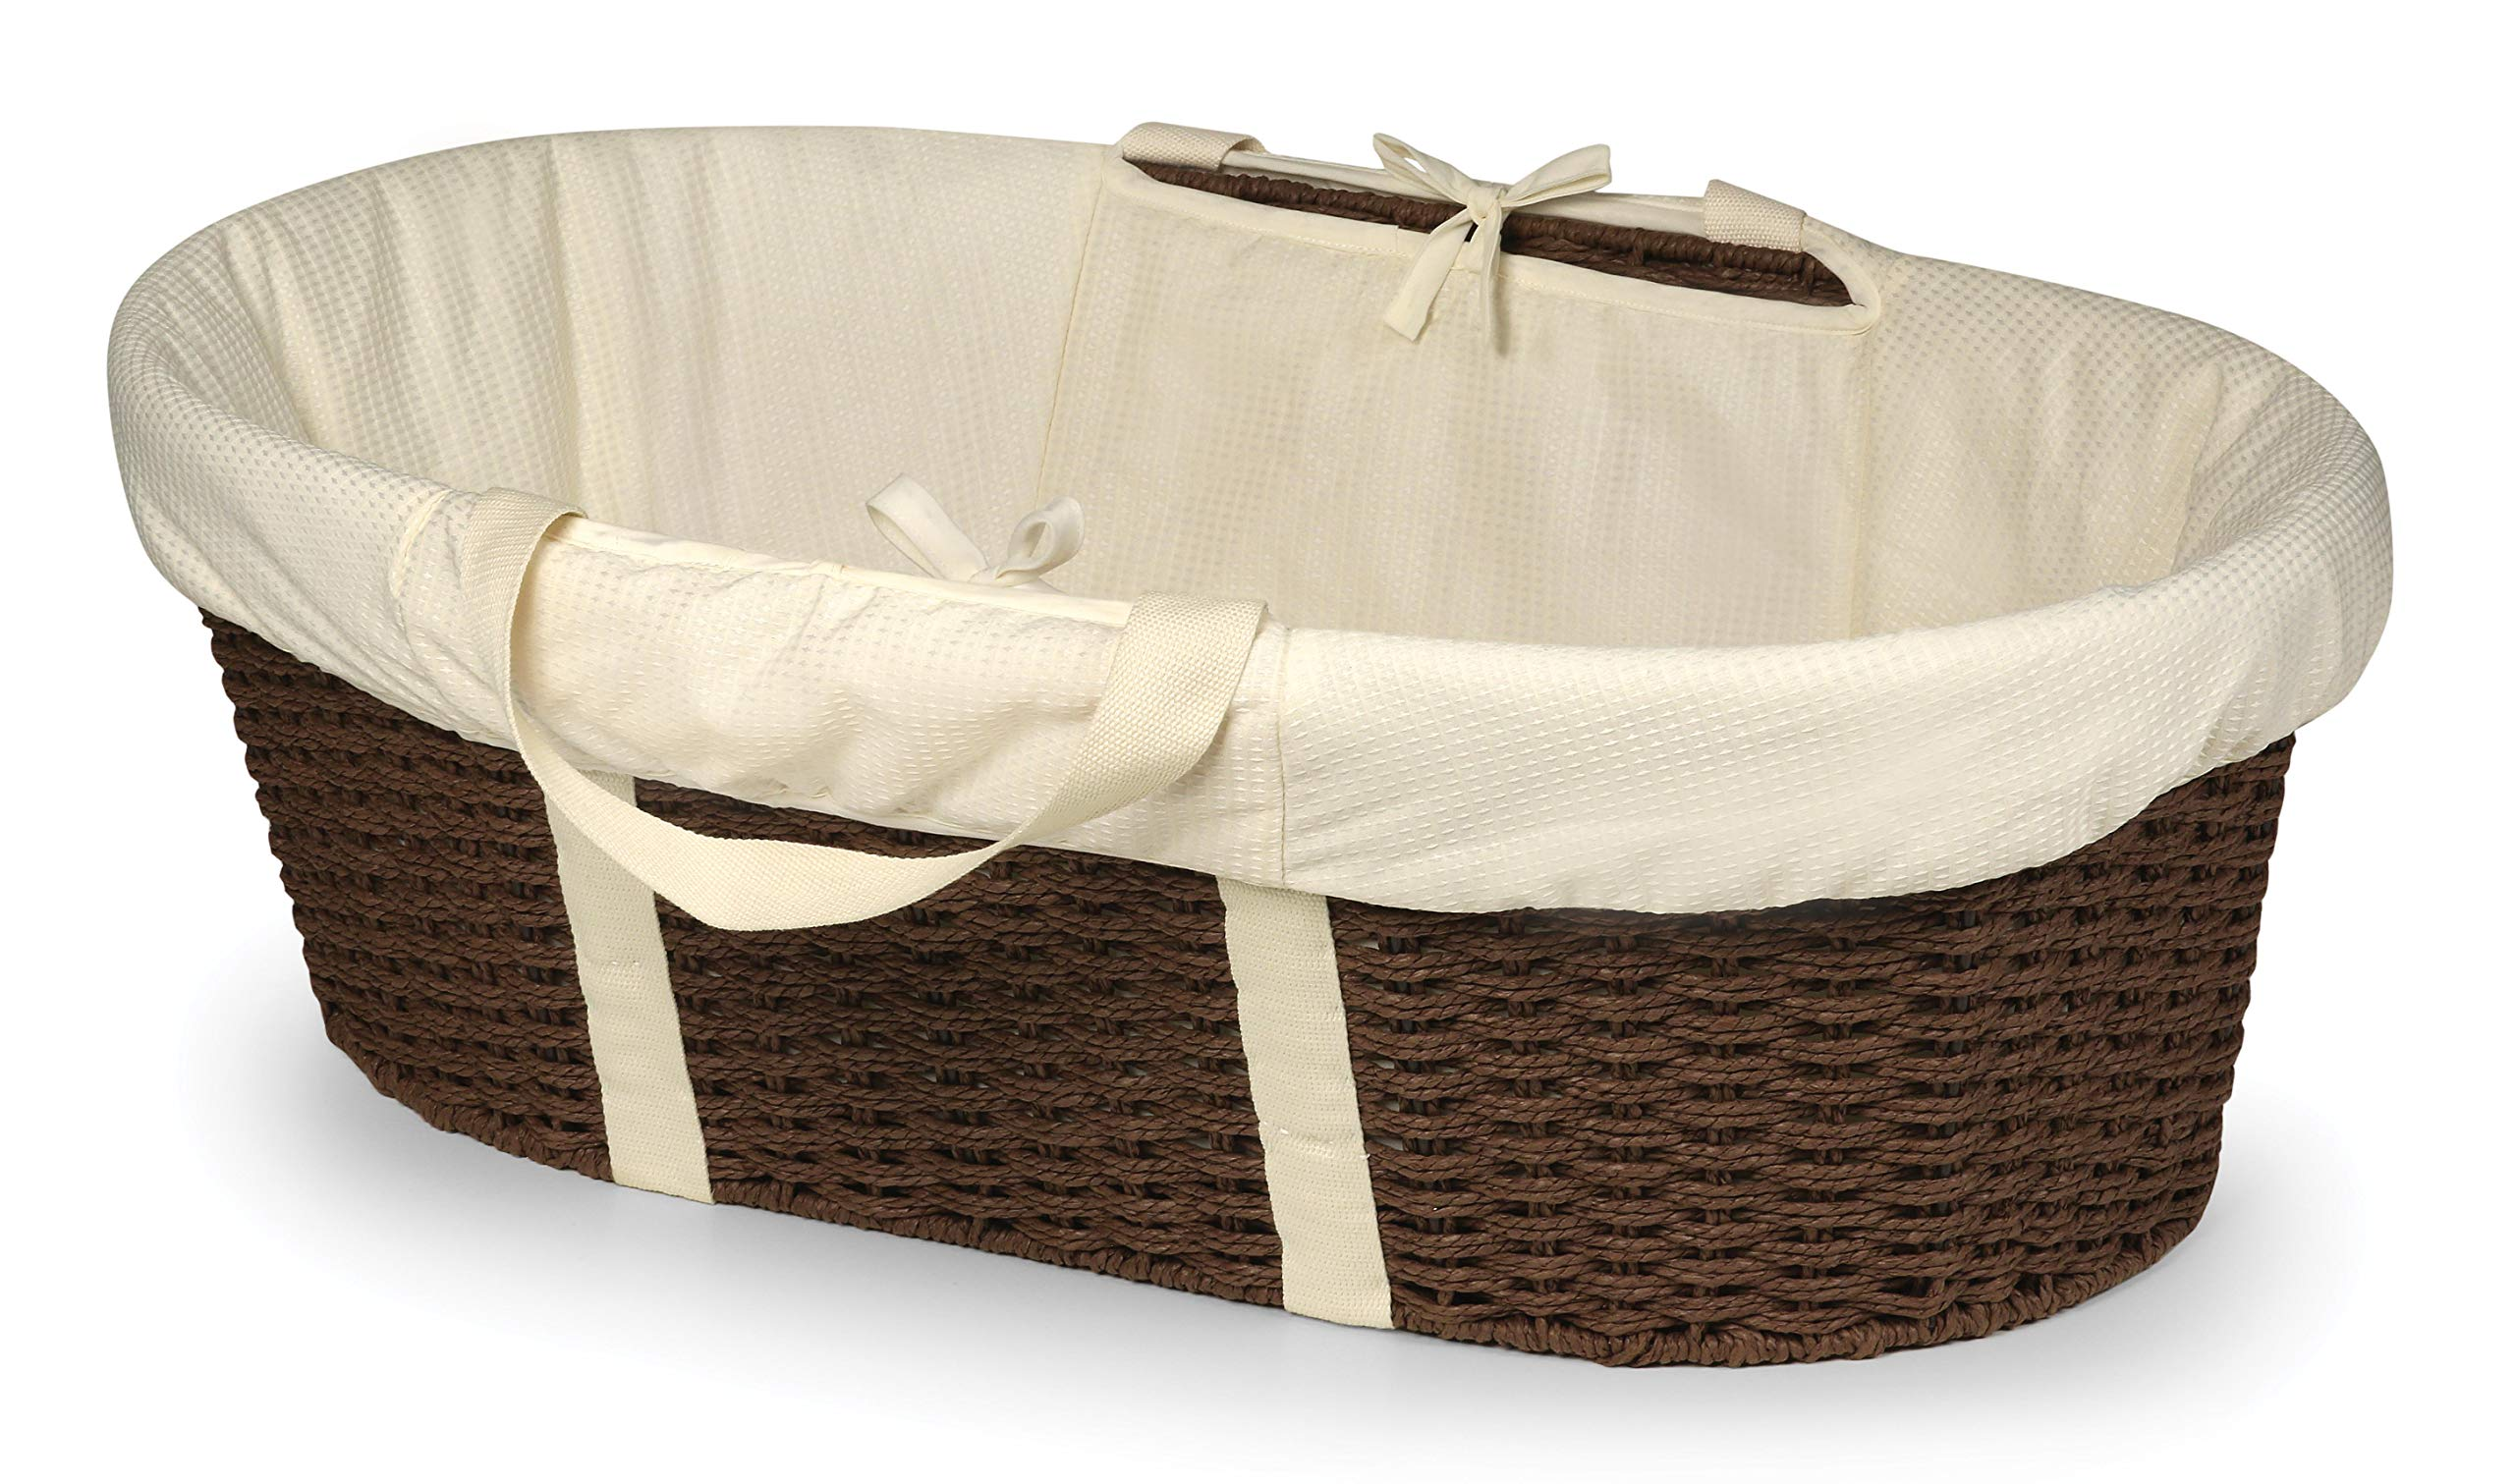 Badger Basket Wicker-Look Woven Baby Moses Basket with Bedding, Sheet, and Pad, Espresso/Ecru by Badger Basket